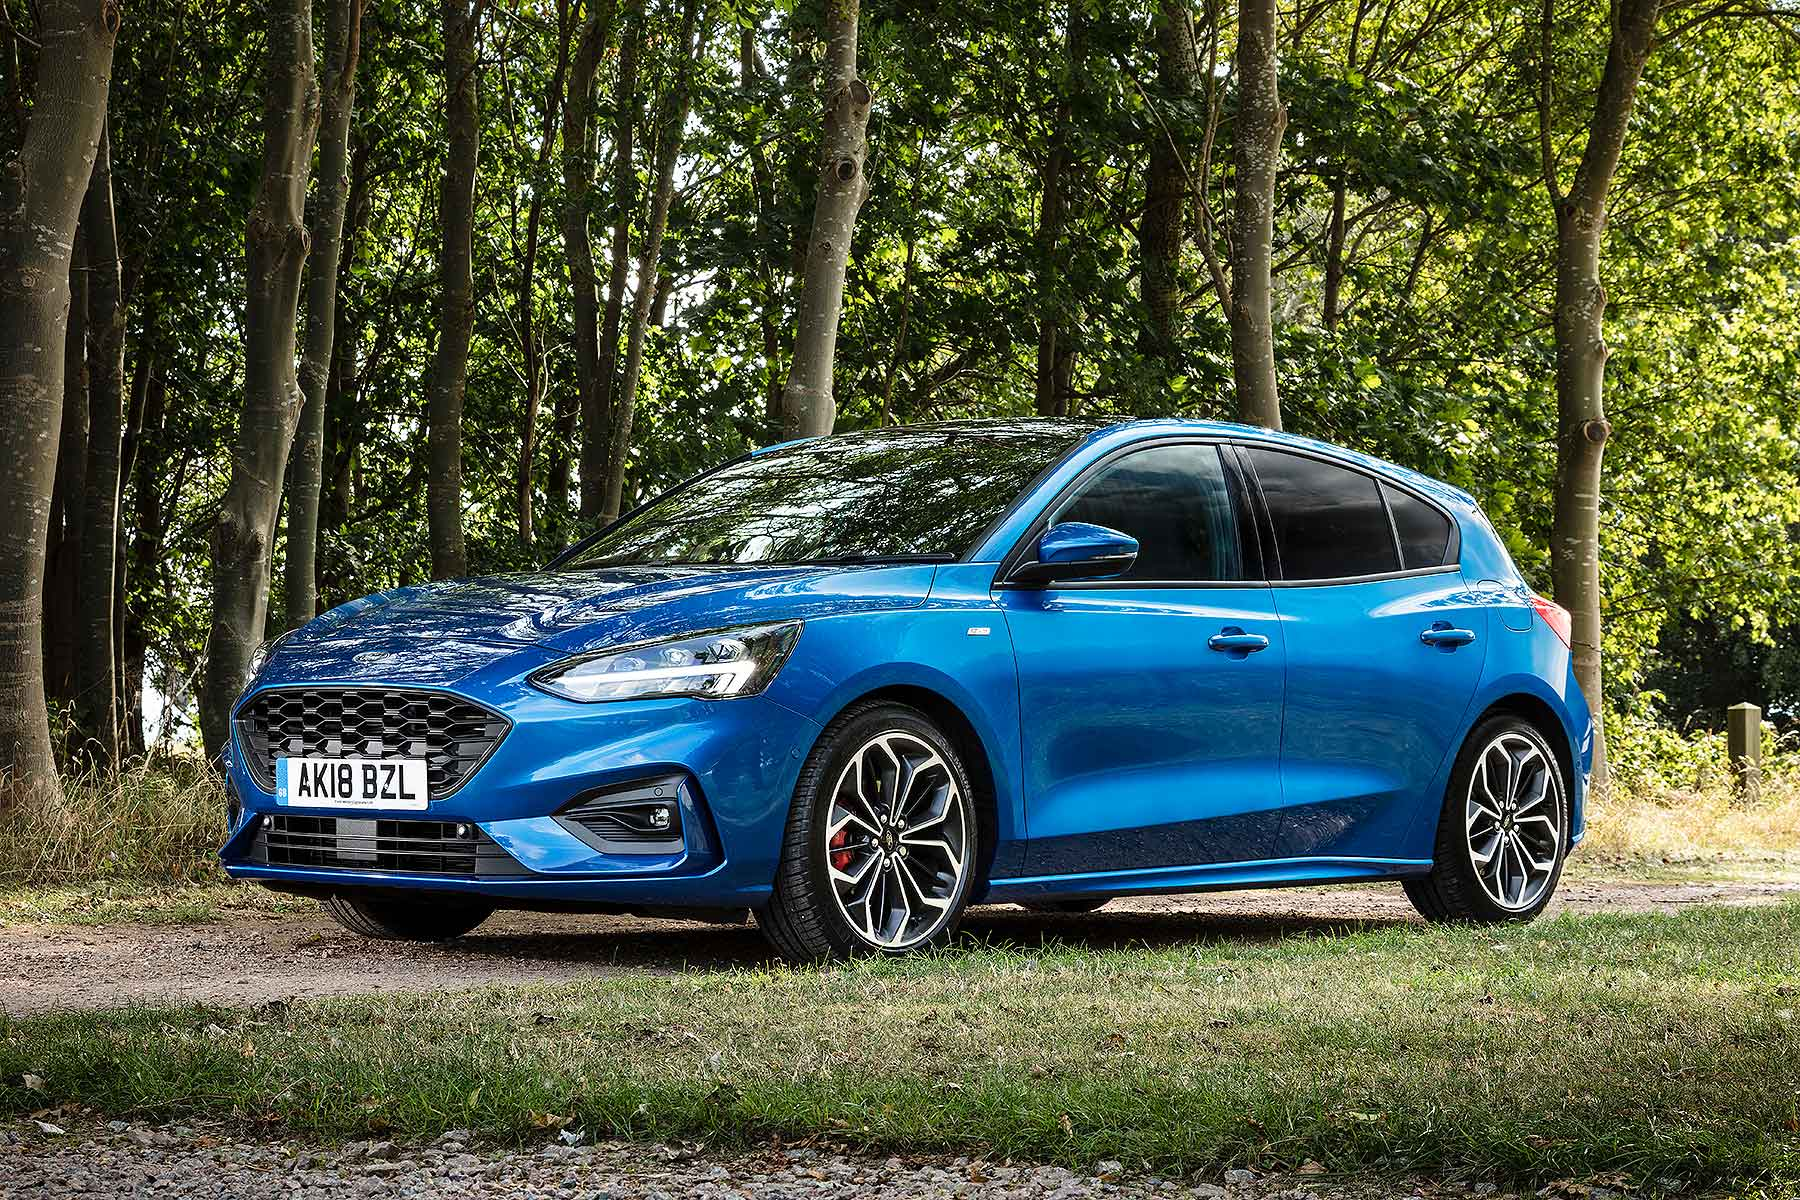 ford focus st line 1 5 ecoblue 120 2018 review motoring research. Black Bedroom Furniture Sets. Home Design Ideas